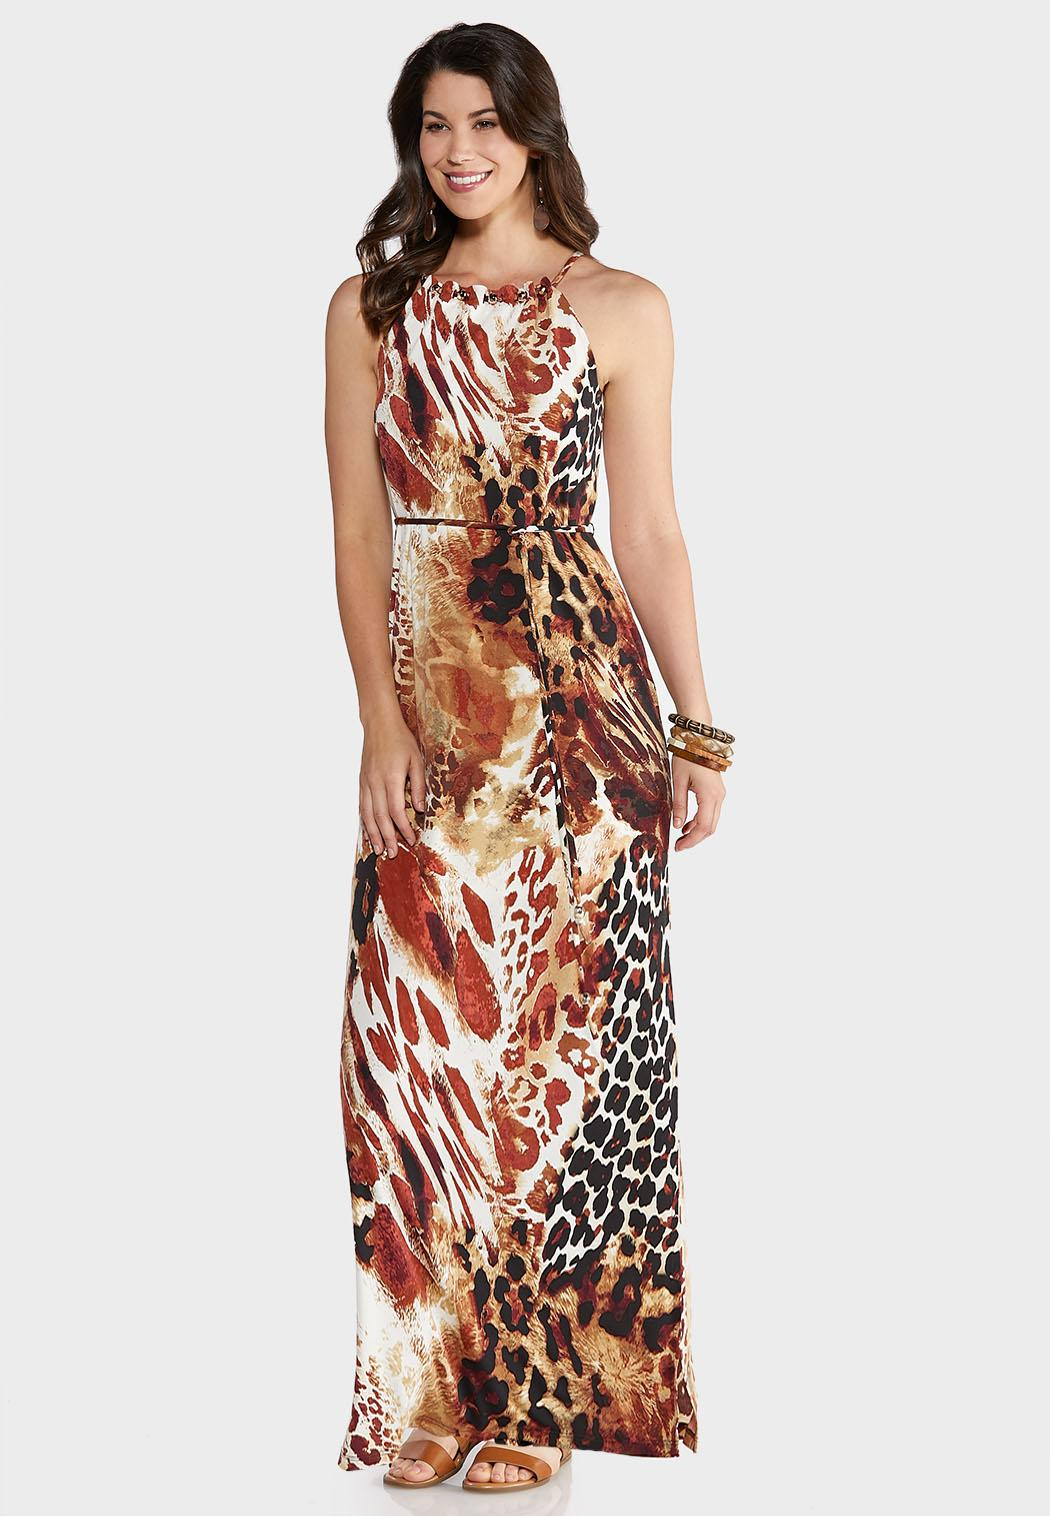 c4b97dcc9356 Women's Dresses- Fit and Flare, Swing, Maxi, Midi & More Affordable Dresses